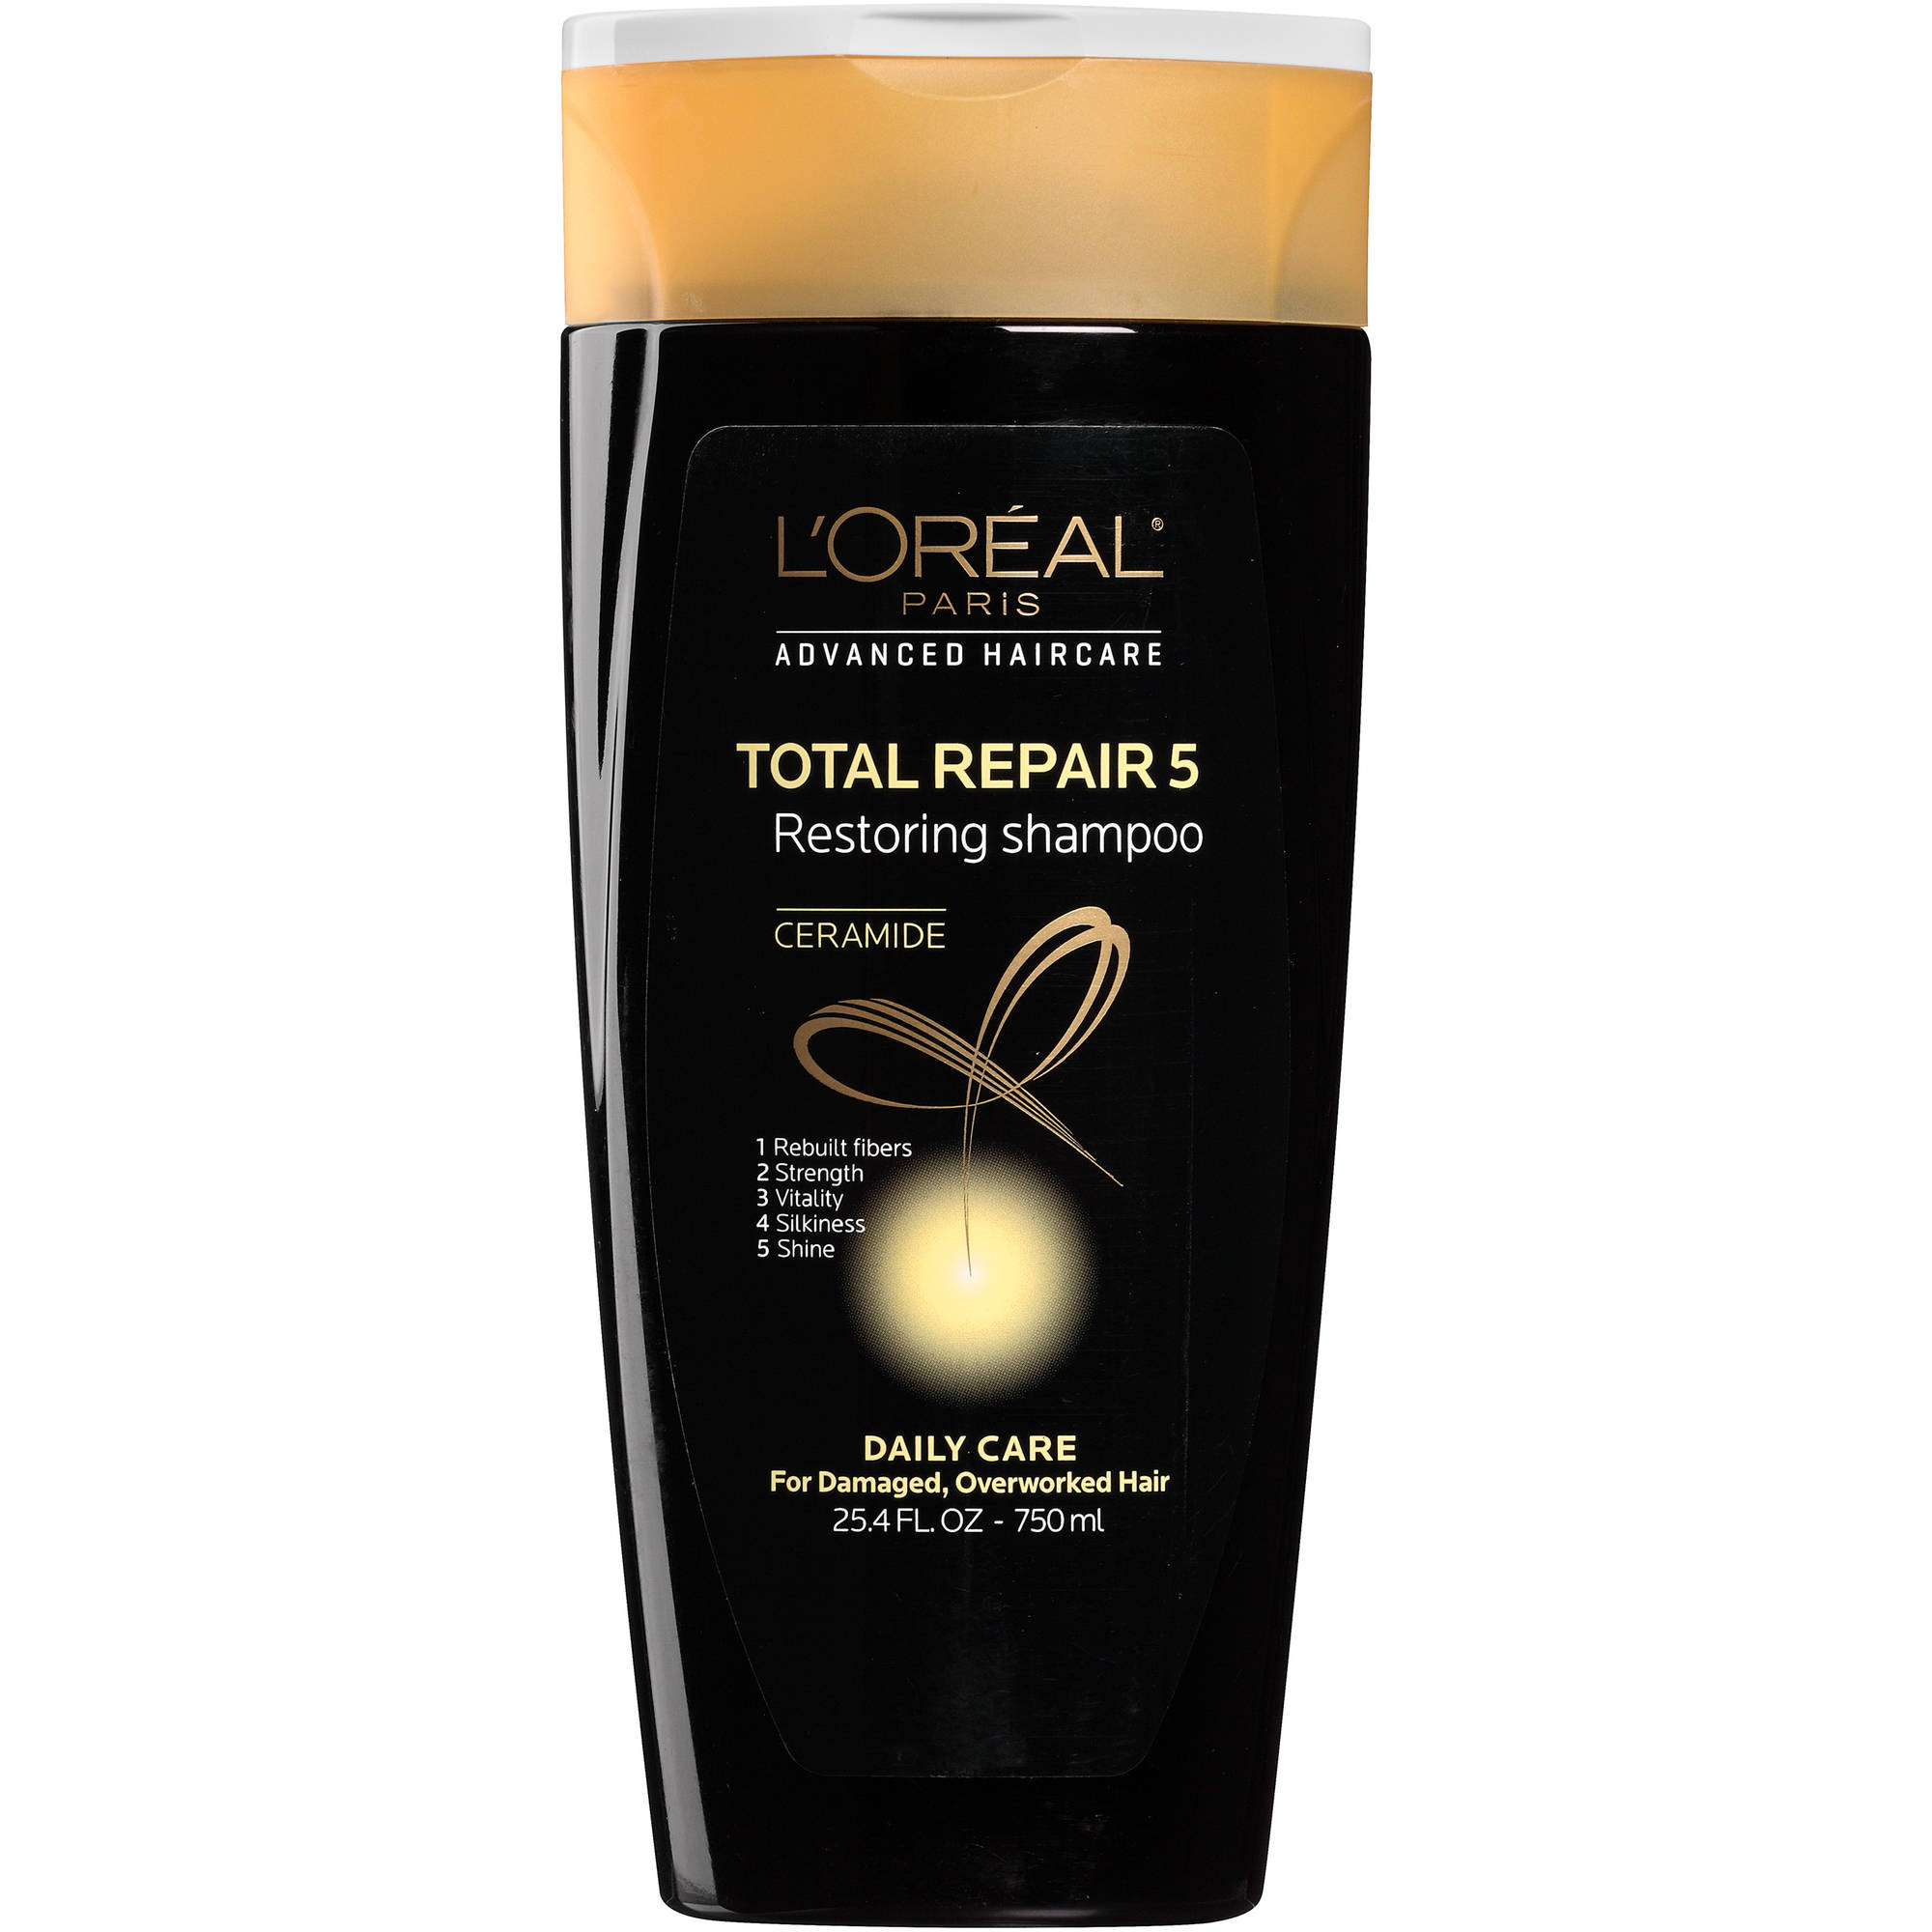 L'Oreal Paris Hair Expert Total Repair 5 Restoring Shampoo 25.4 FL OZ